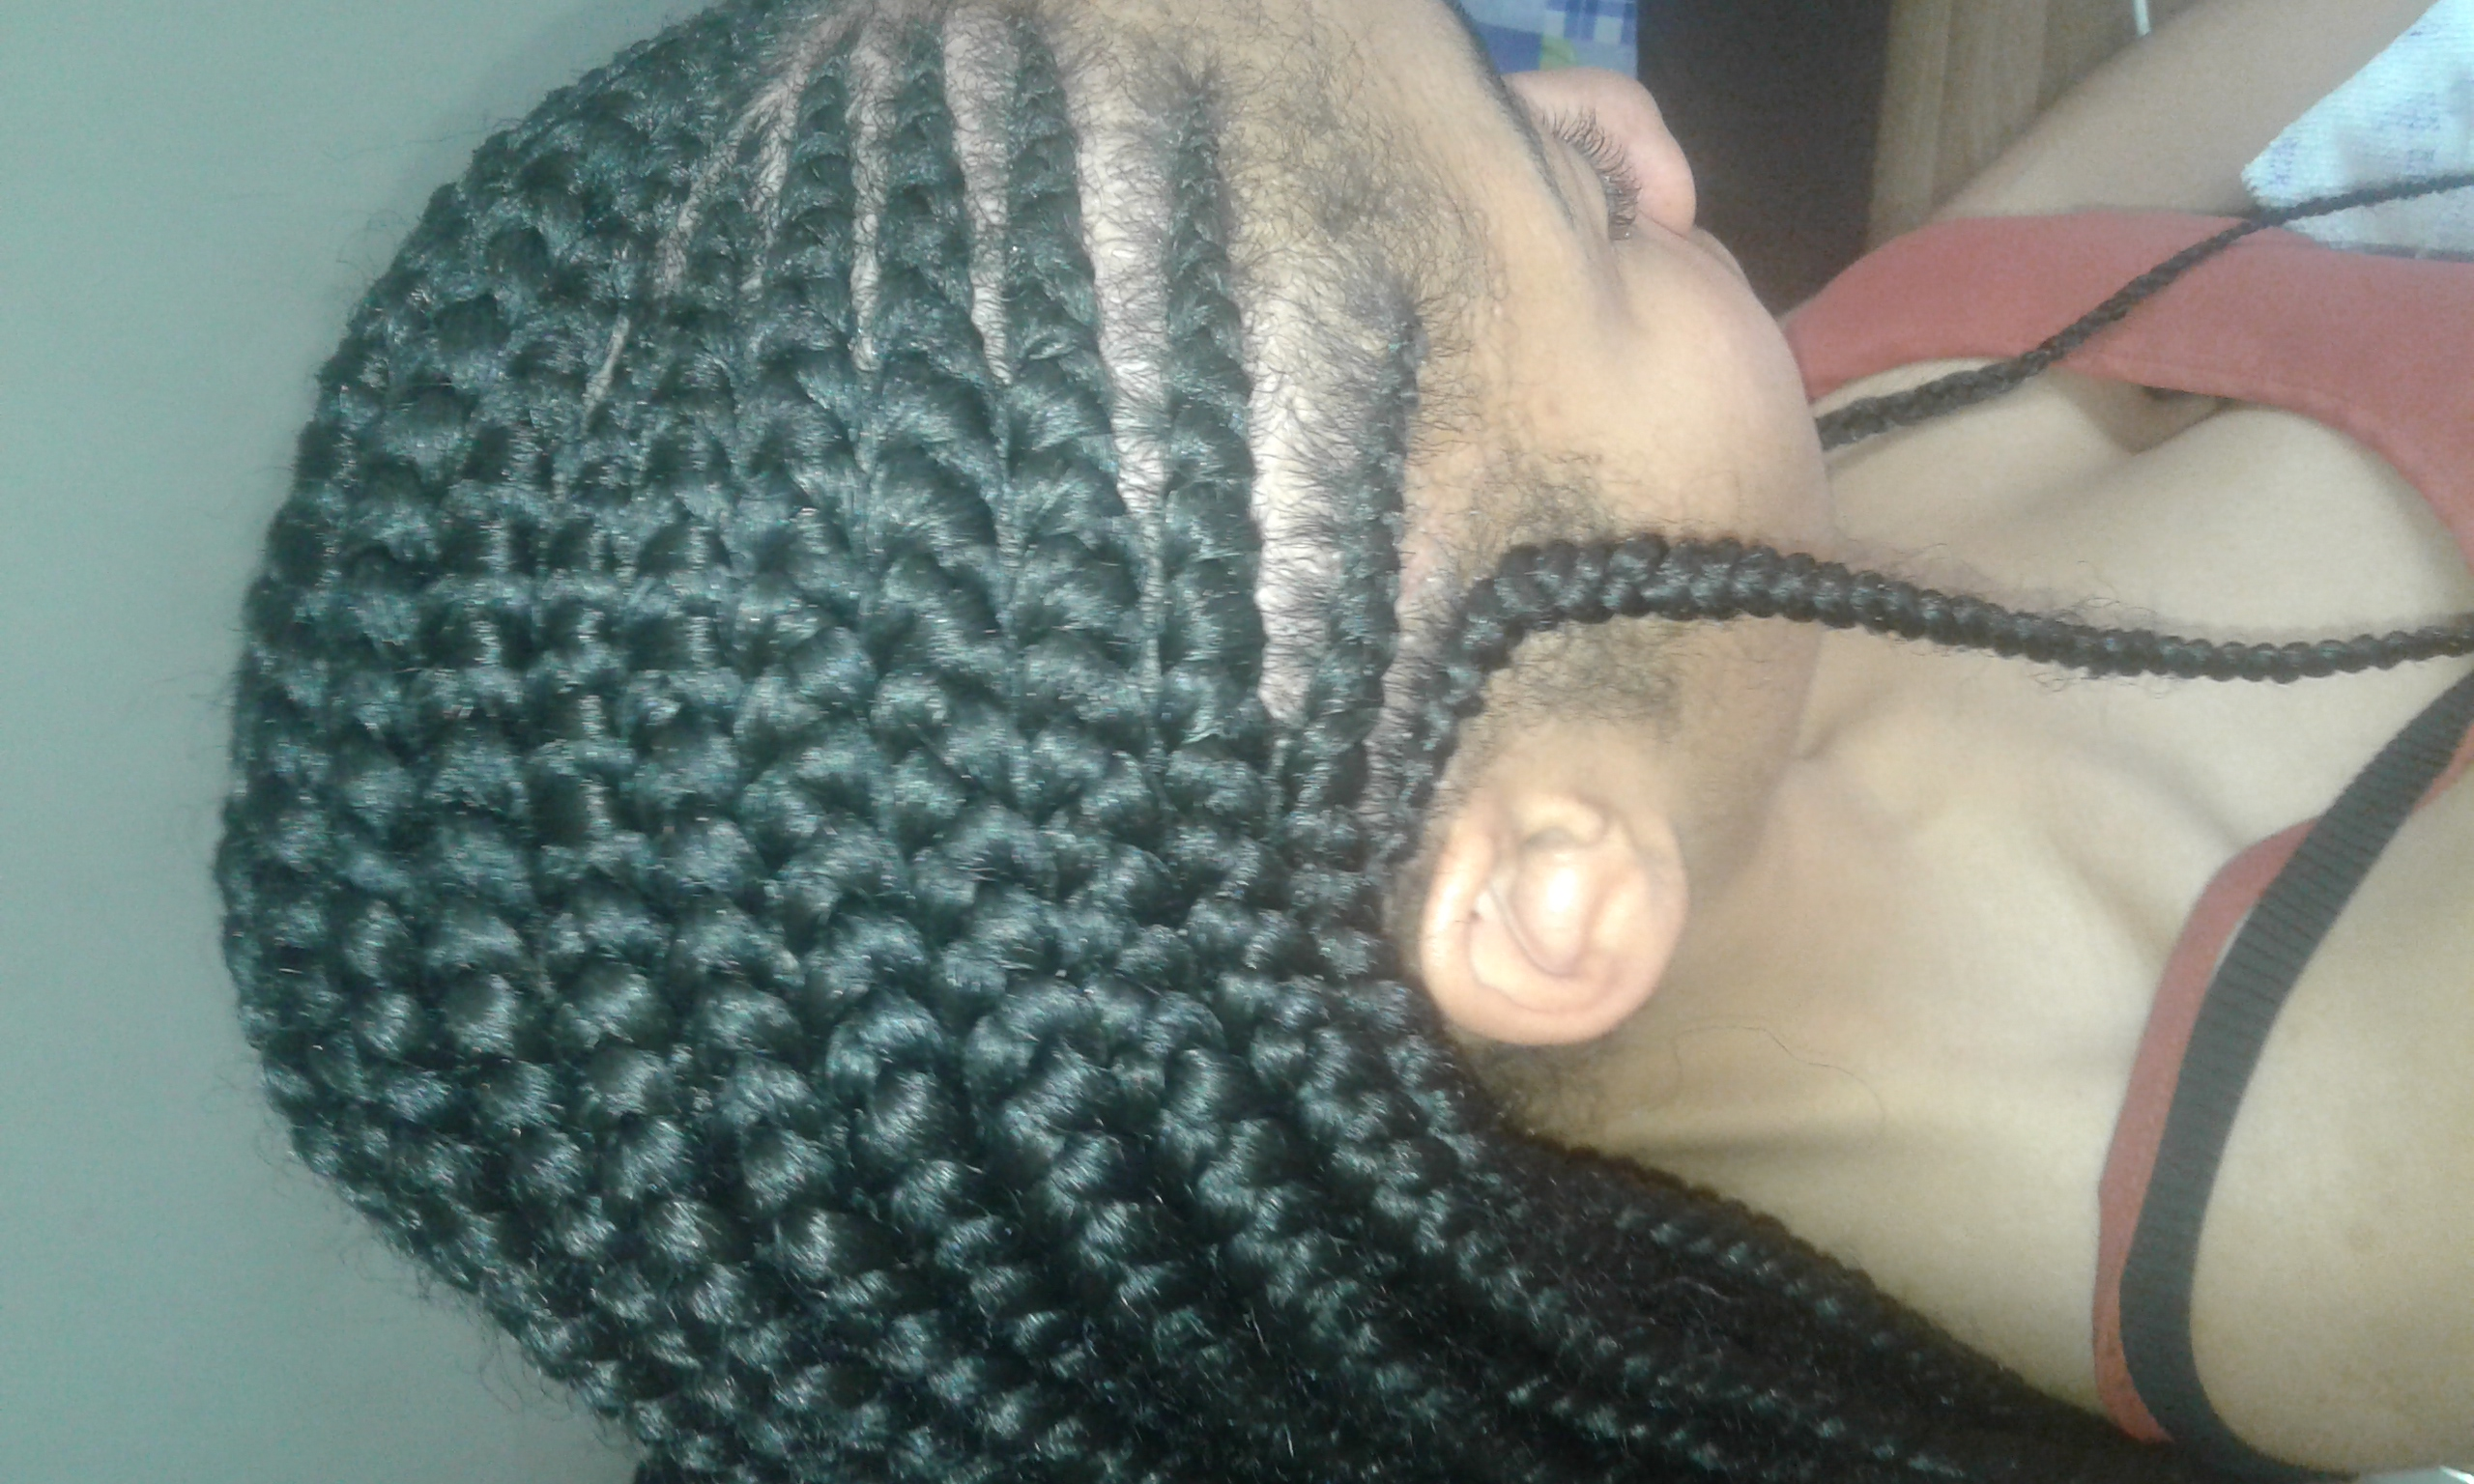 salon de coiffure afro tresse tresses box braids crochet braids vanilles tissages paris 75 77 78 91 92 93 94 95 UXNMAIFG